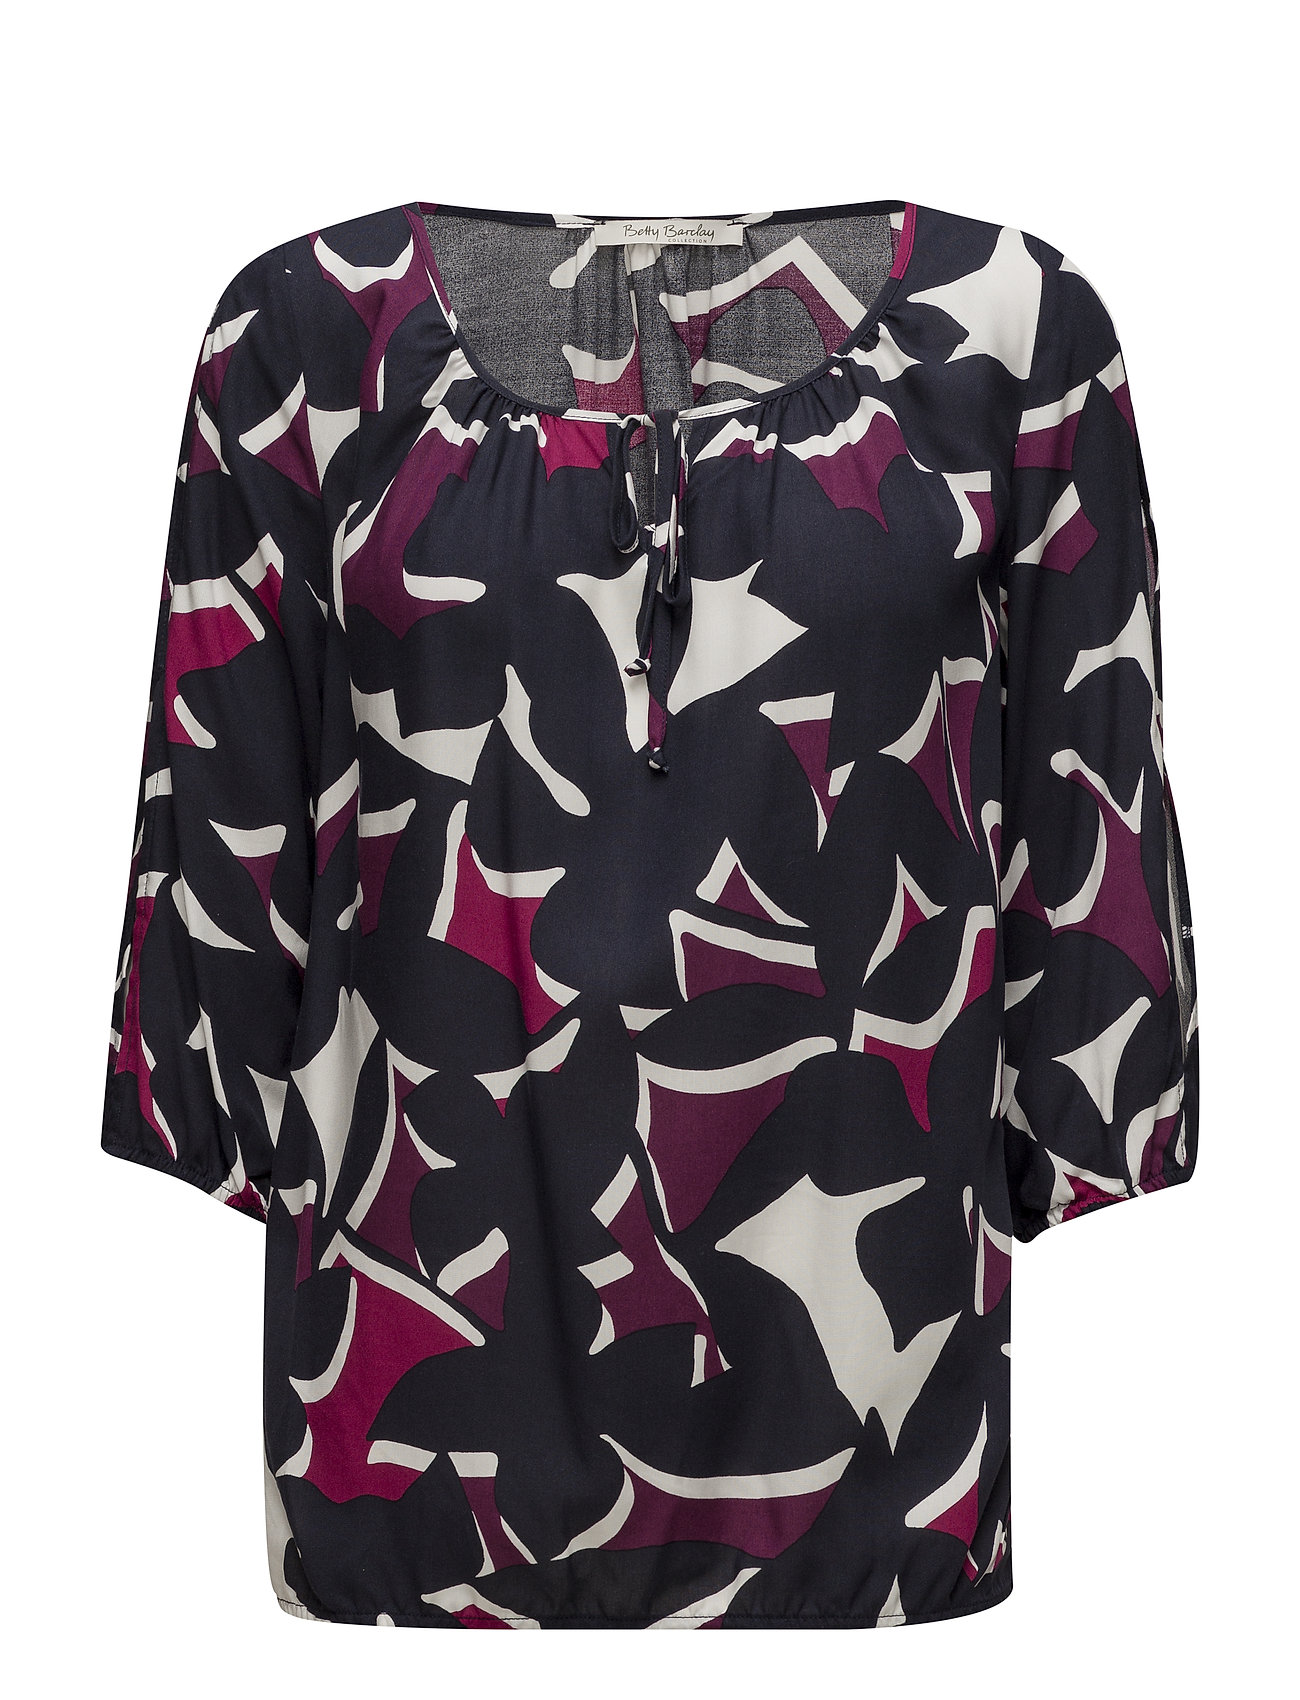 Betty Barclay Blouse Short 3/4 Sleeve - DARK BLUE/PINK